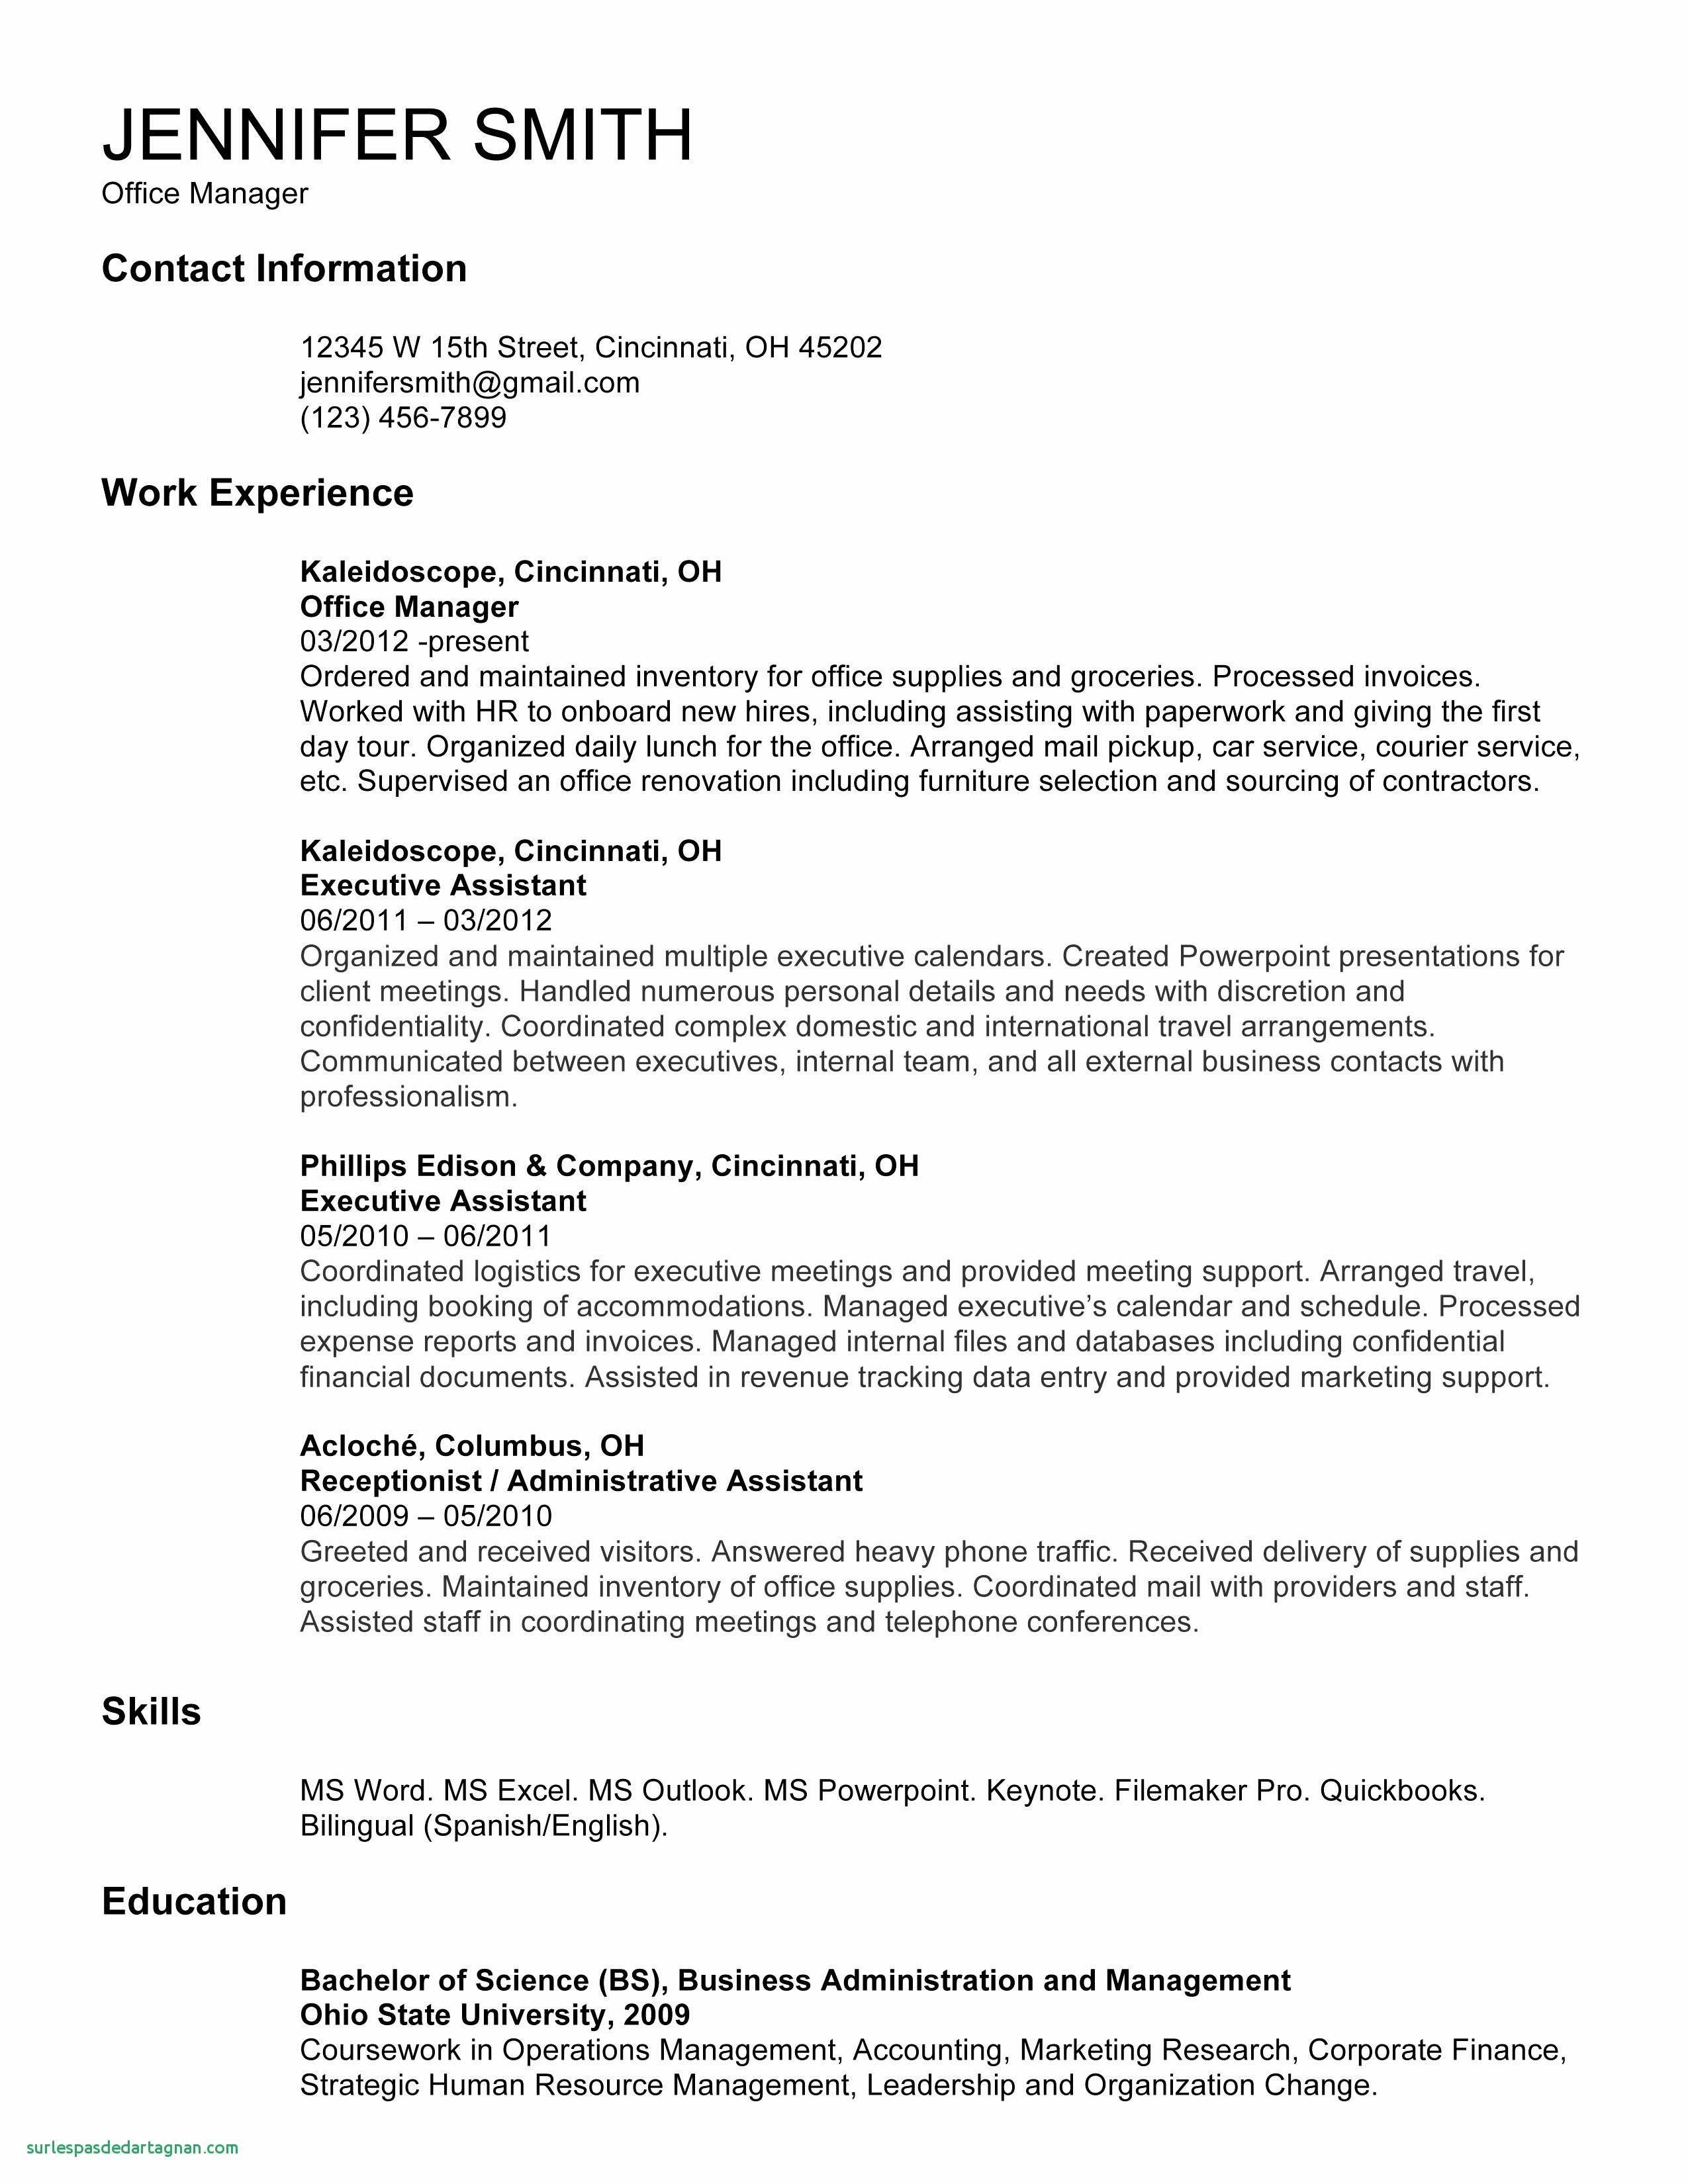 Acting Resume Sample - Acting Resume Sample Unique Inspirational Actor Resume Unique Actor